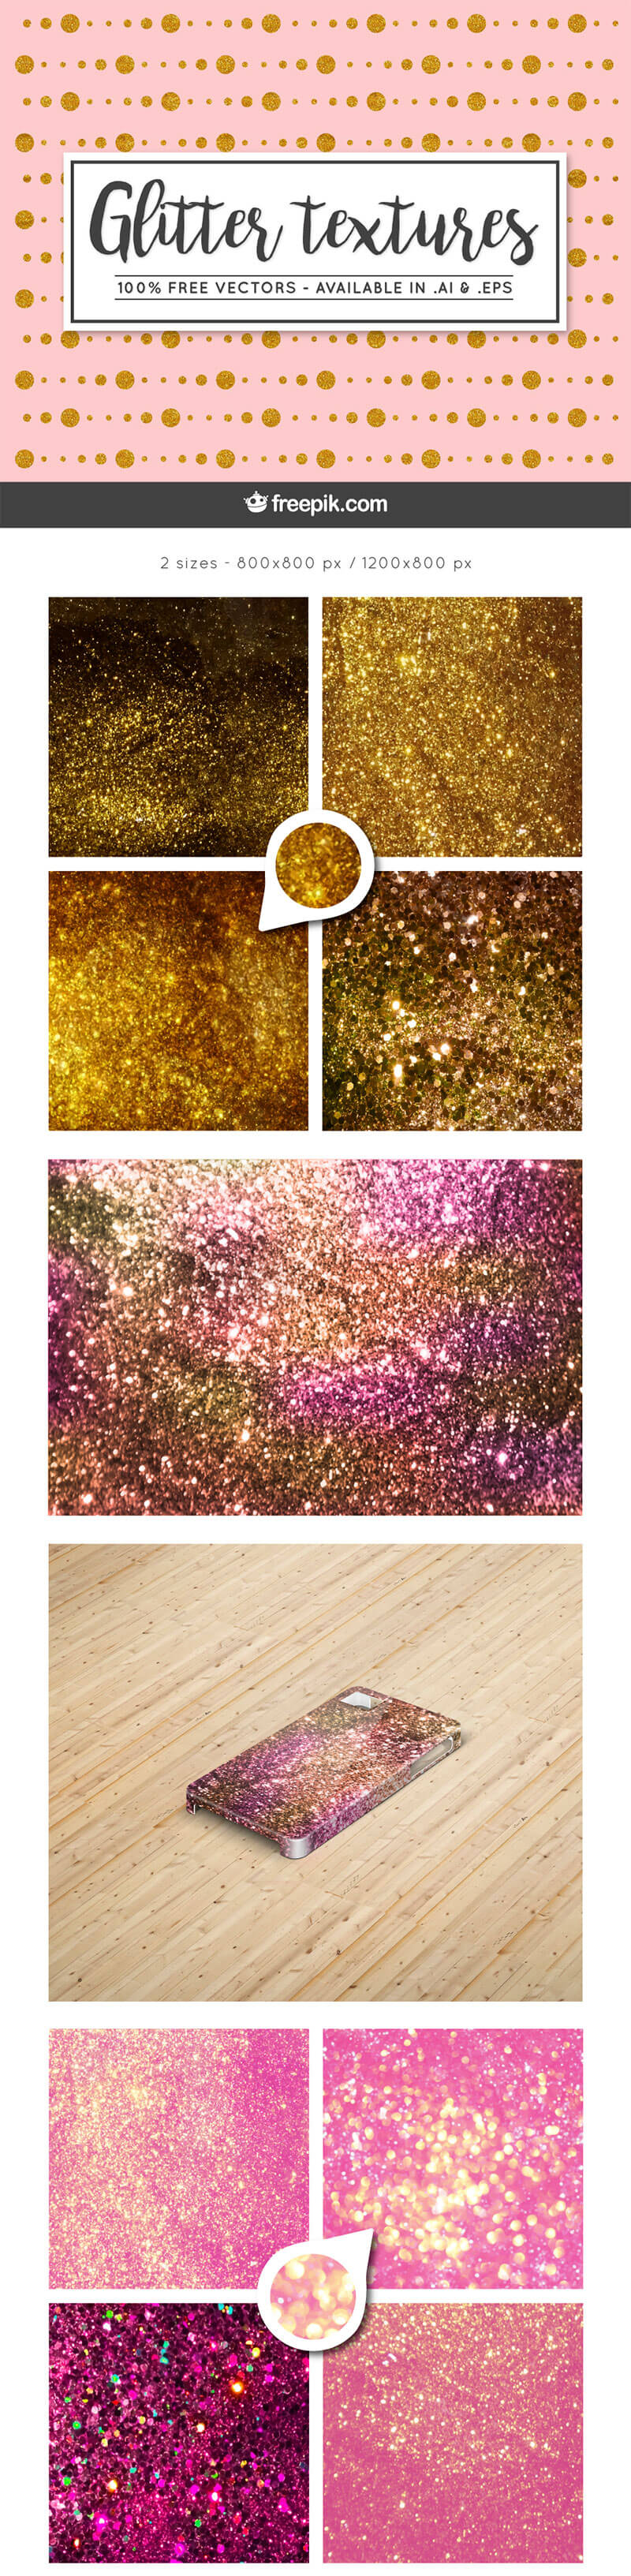 glitter_textures-cover